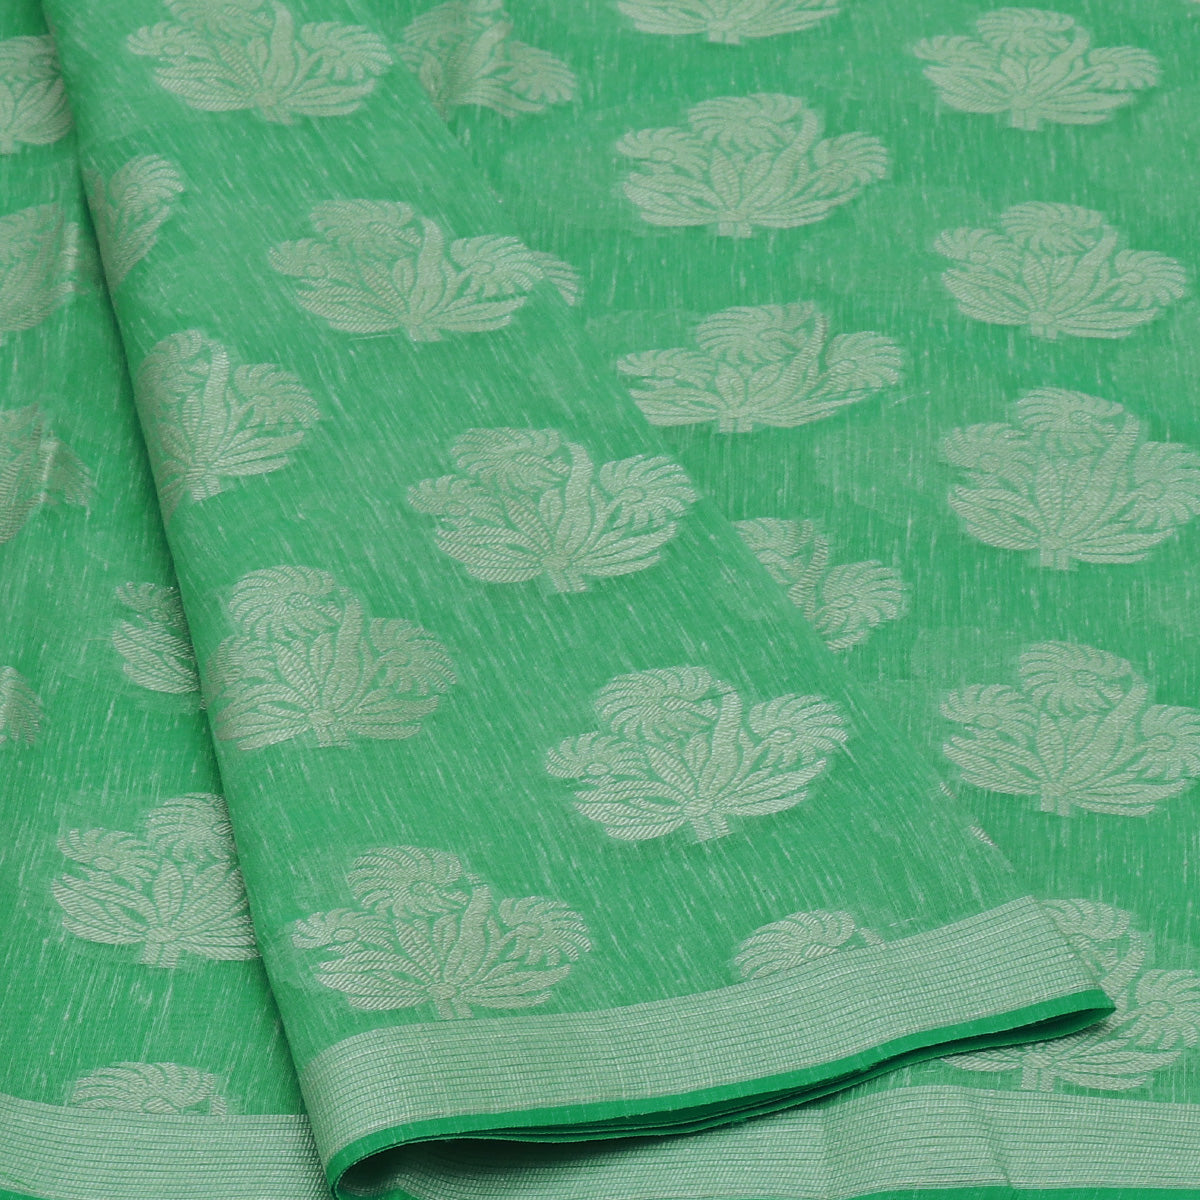 Jute Linen Silver Zari Saree Light Green with Simple border